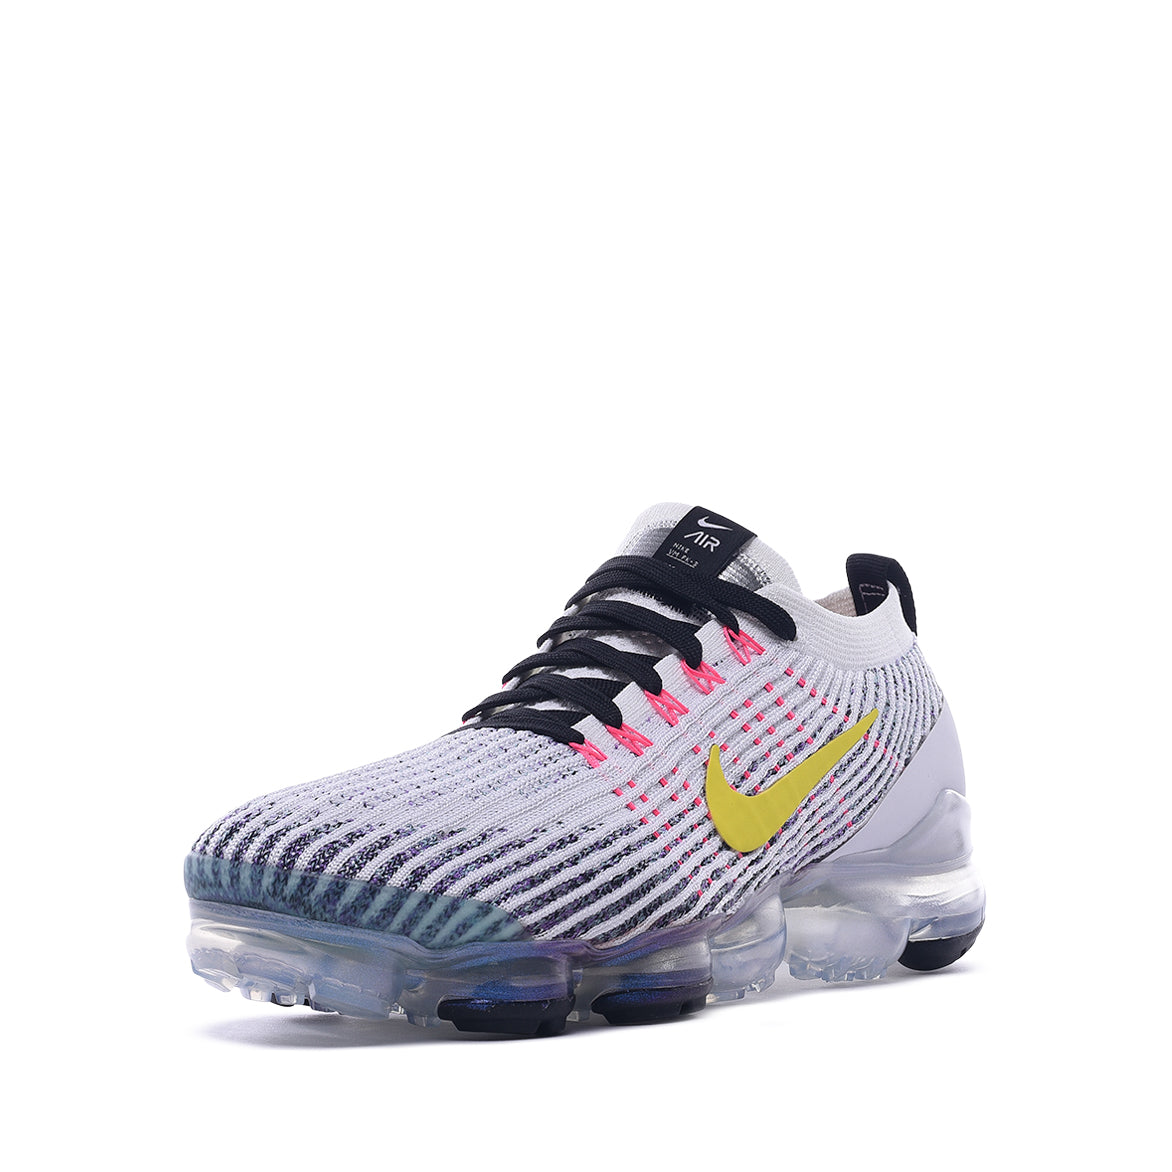 AIR VAPORMAX FLYKINT 3 - WHITE / DYNAMIC YELLOW / PINK BLAST